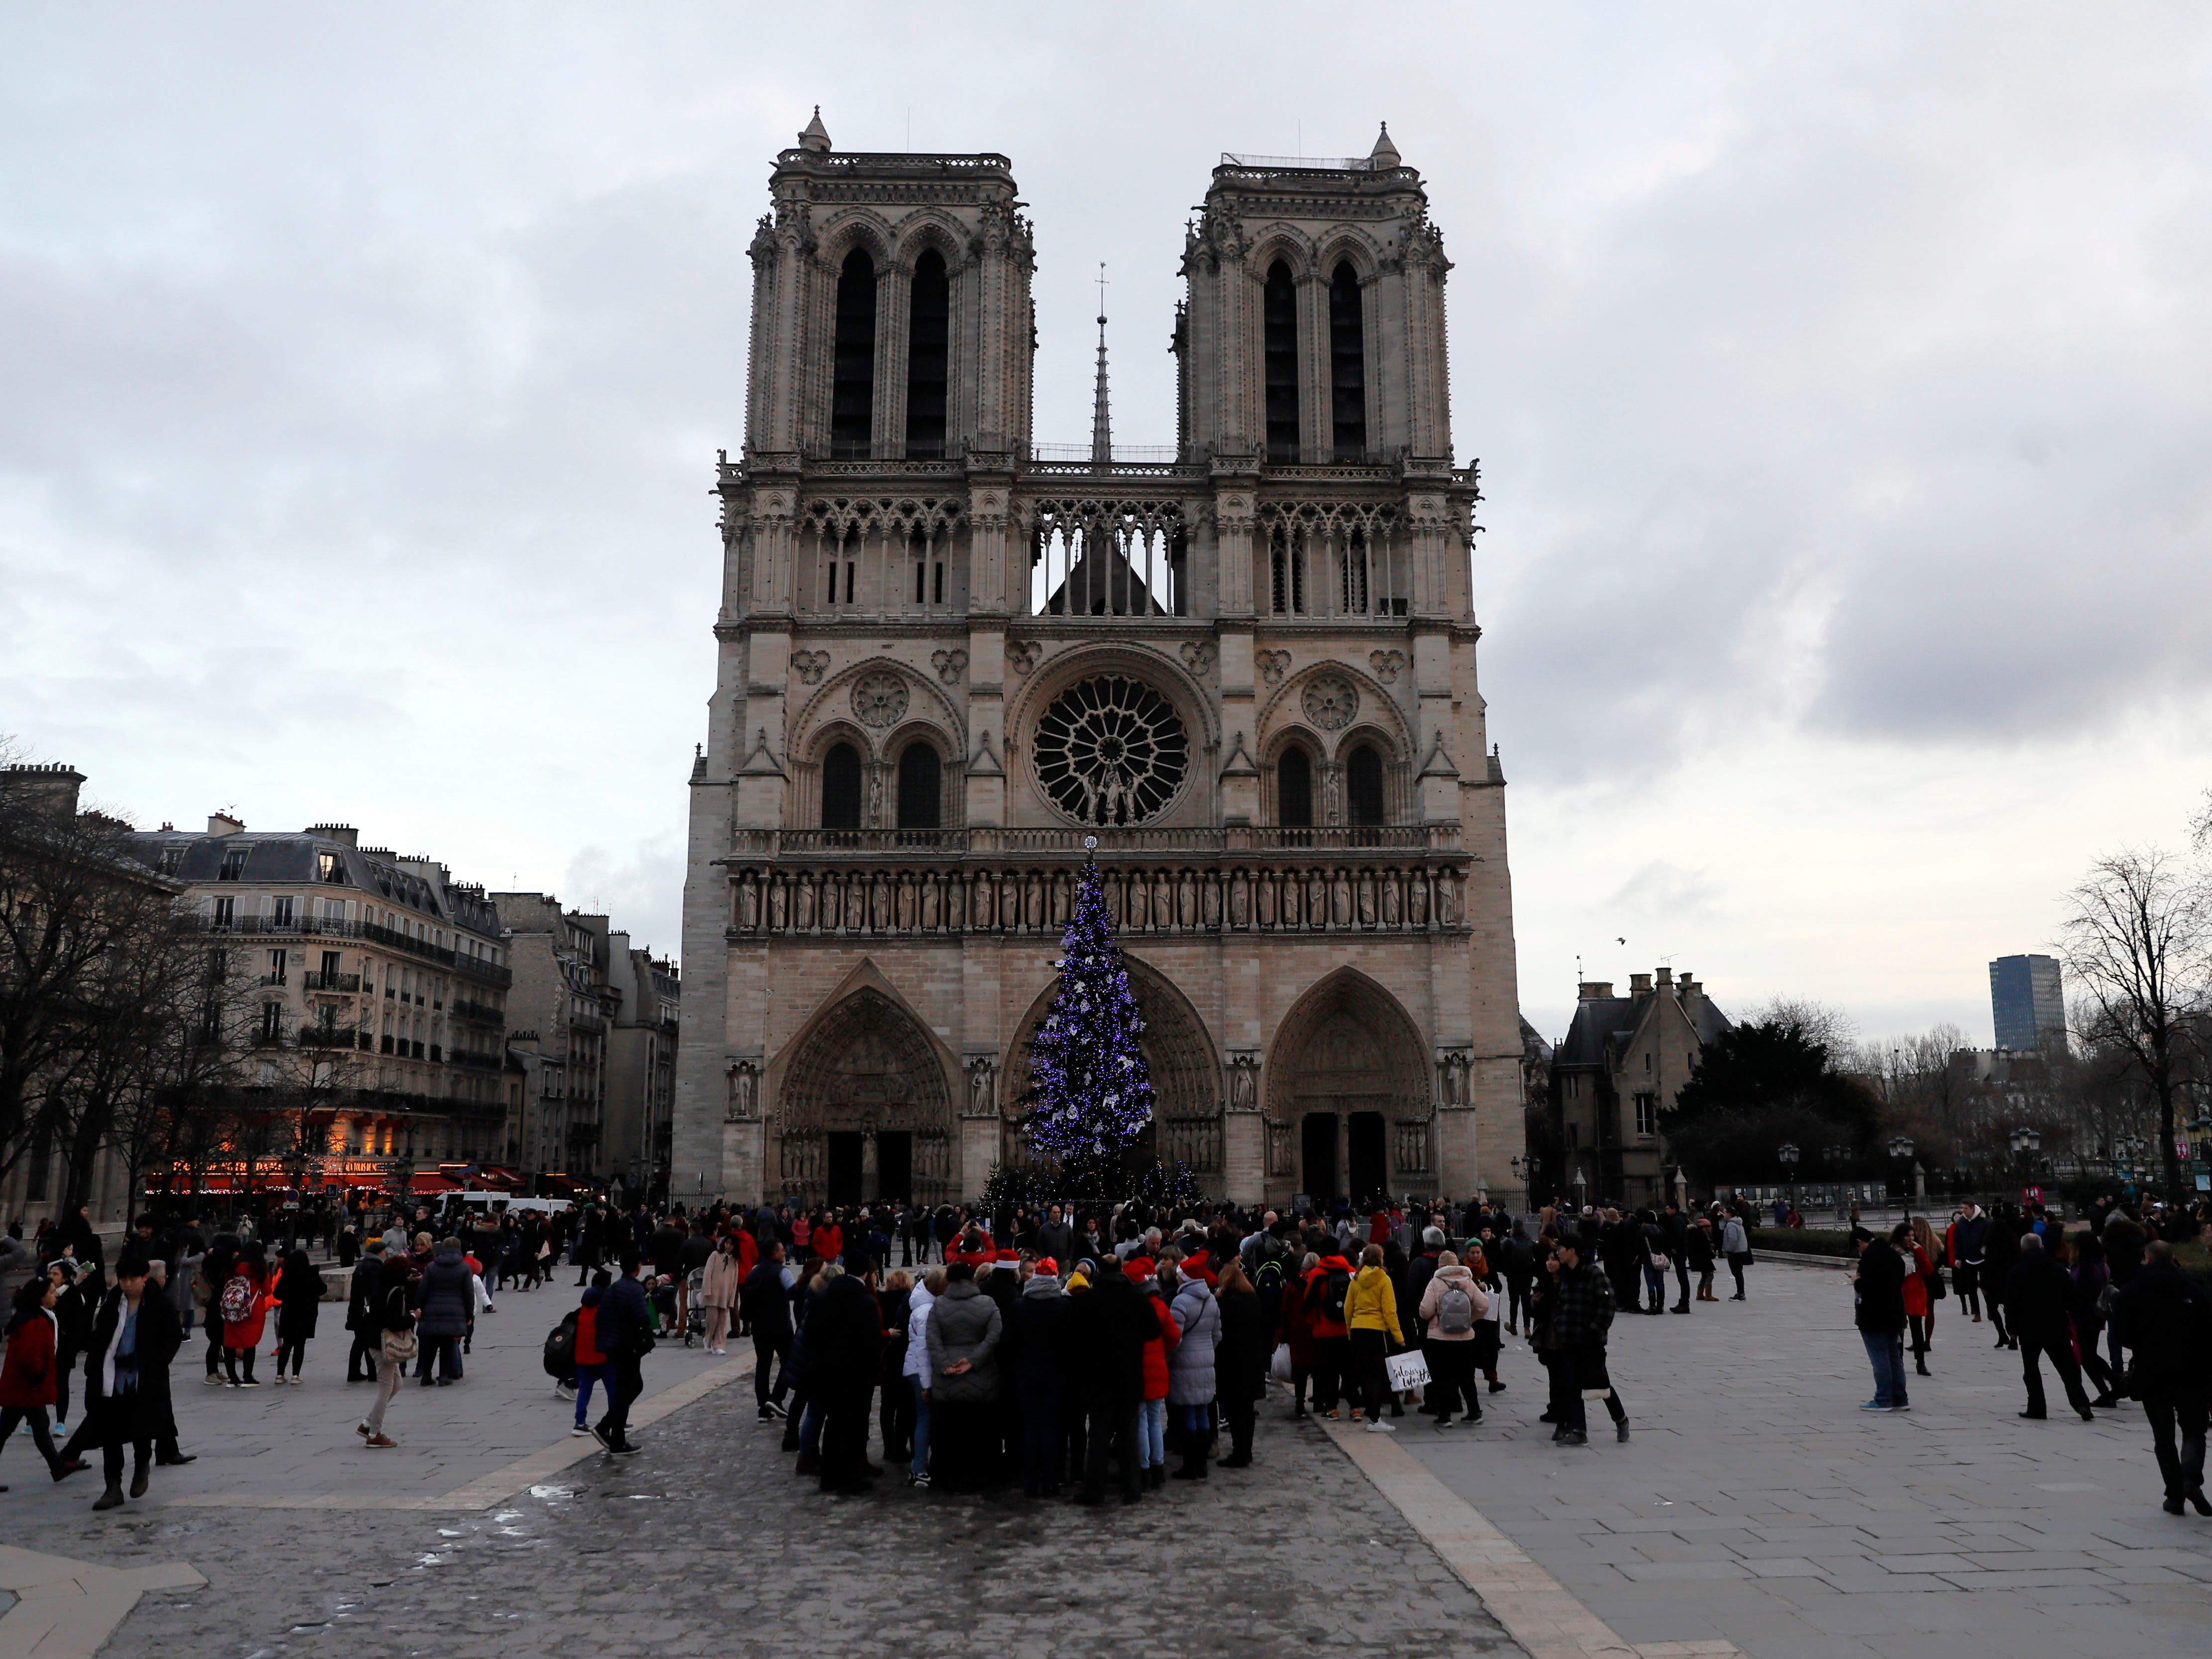 The Notre Dame Cathedral is one of the most famous sites in Paris. Travelzoo has named Paris a top affordable destination for January.